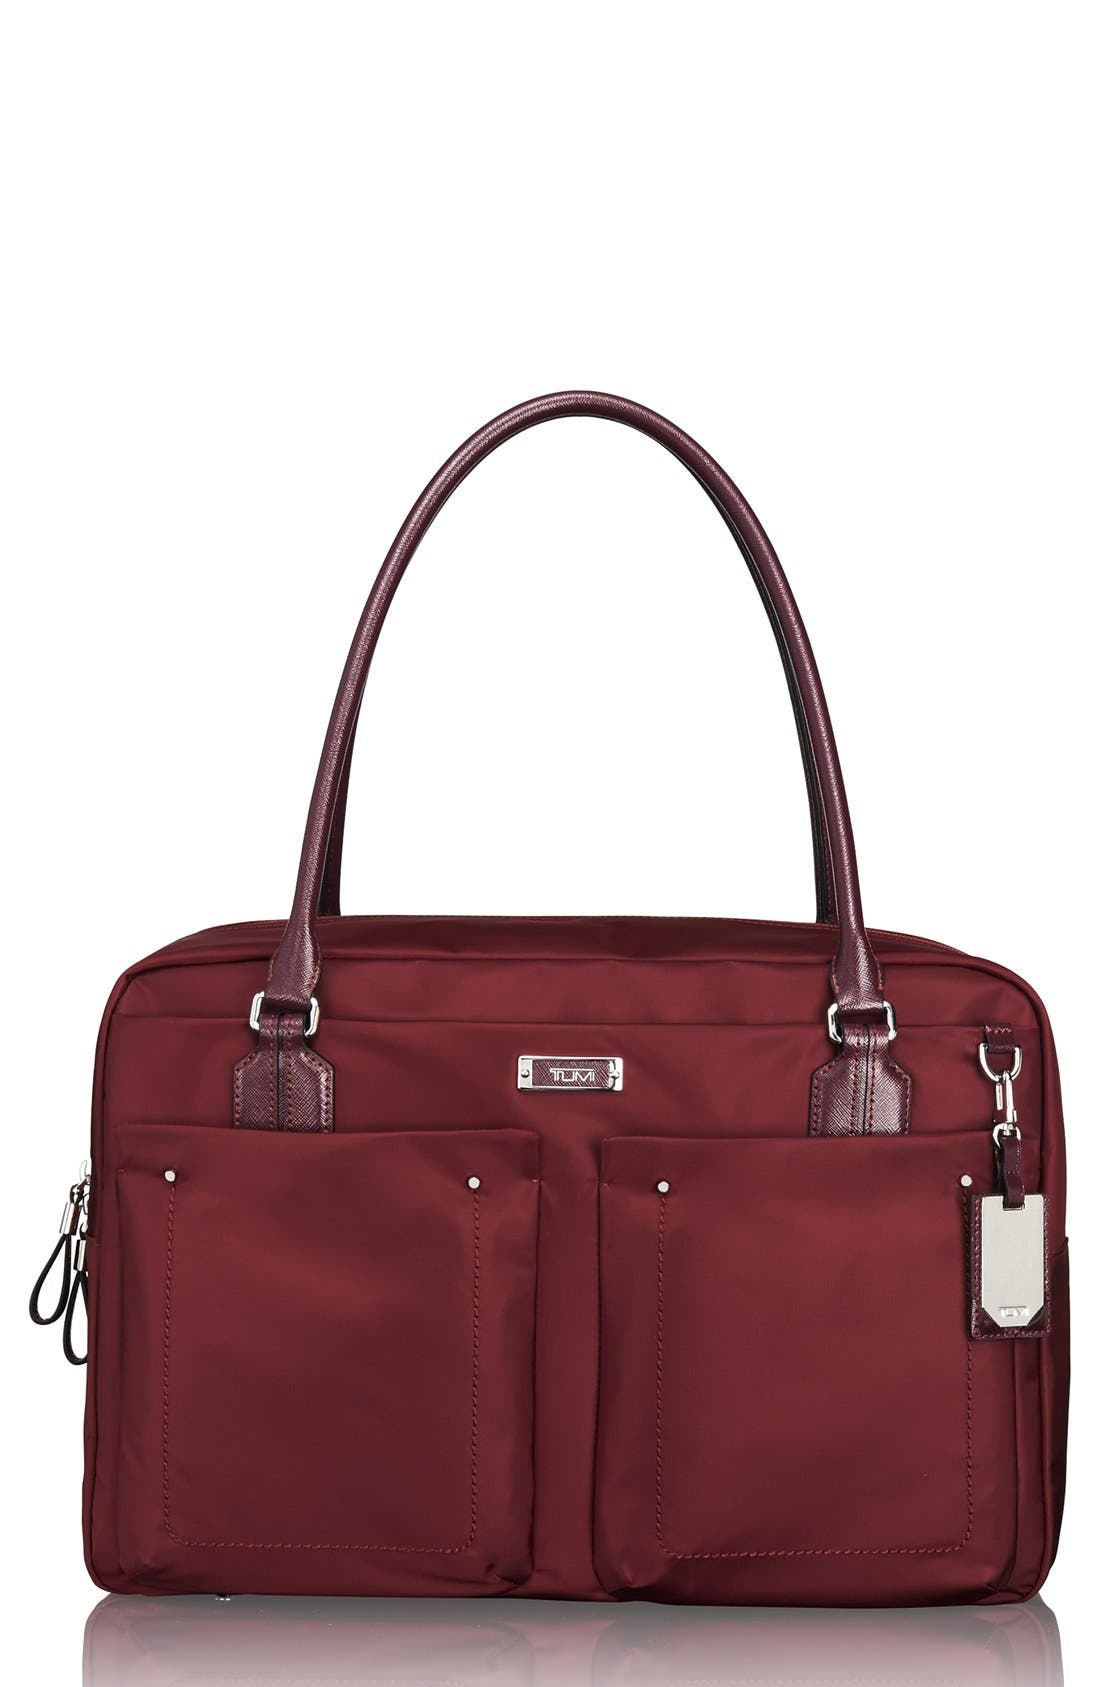 Alternate Image 1 Selected - Tumi 'Voyageur - Cortina' Boarding Tote (17 Inch)